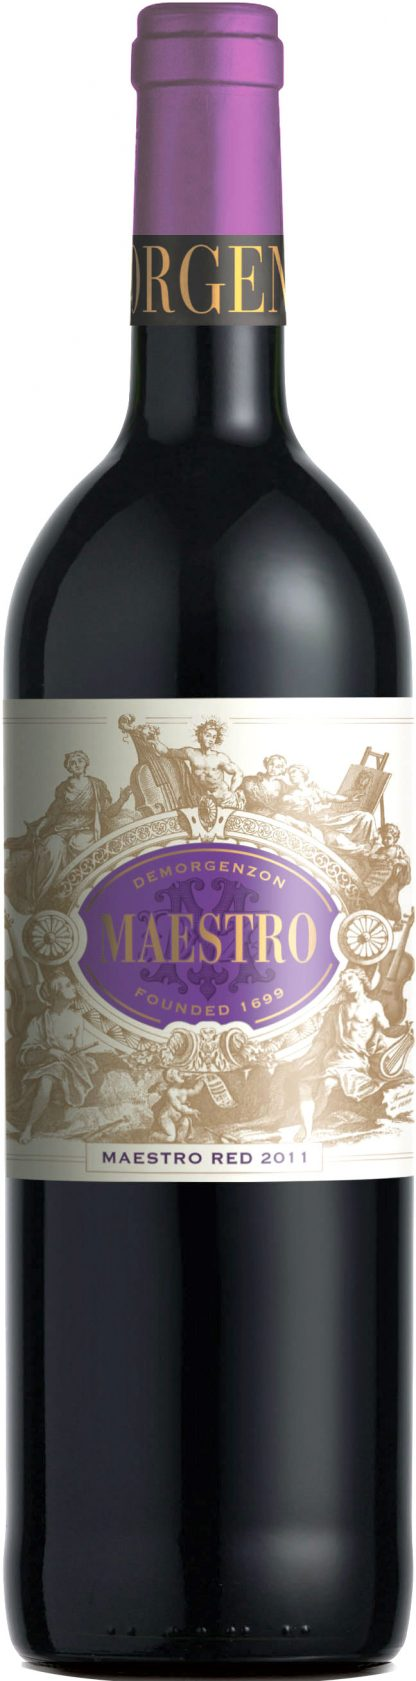 Demorgenzon - Maestro Red 2015 75cl Bottle